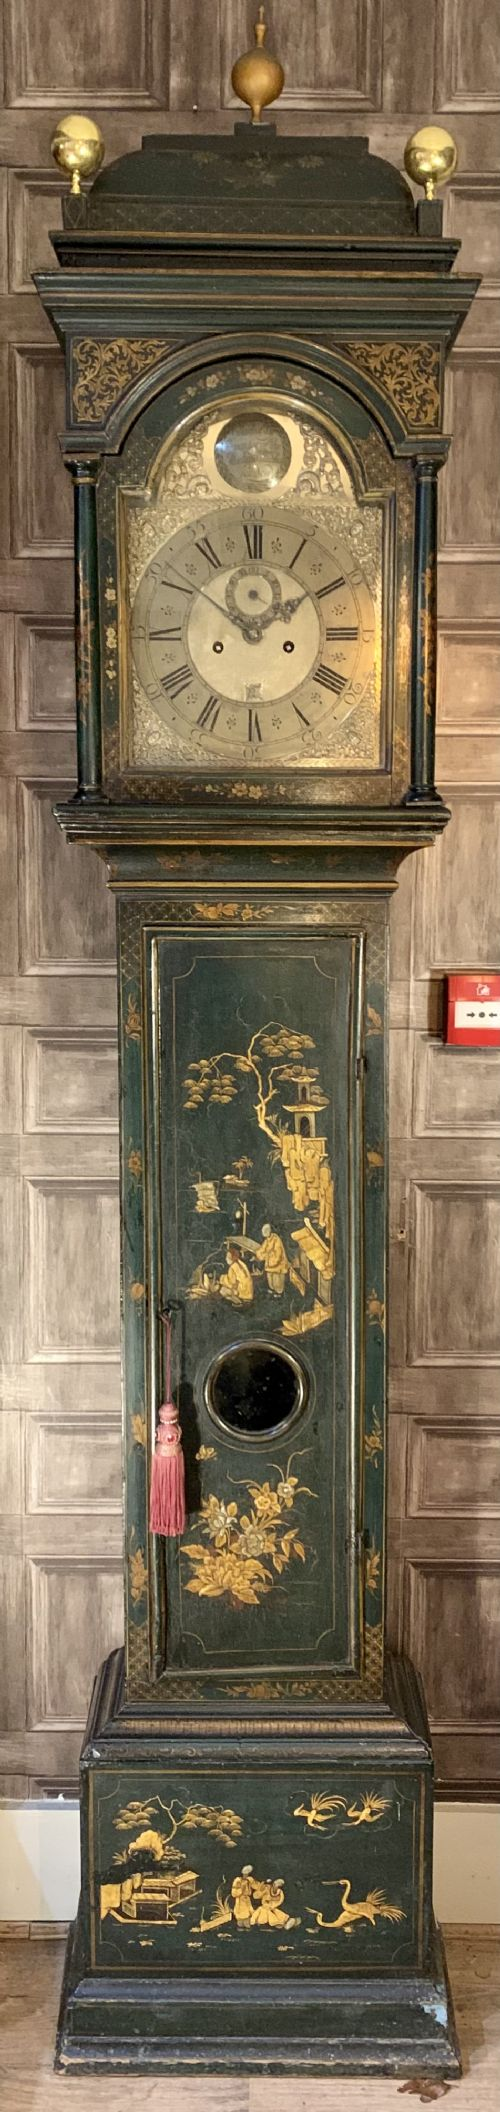 a fine green chinoiserie longcase clock by charles clay c1720